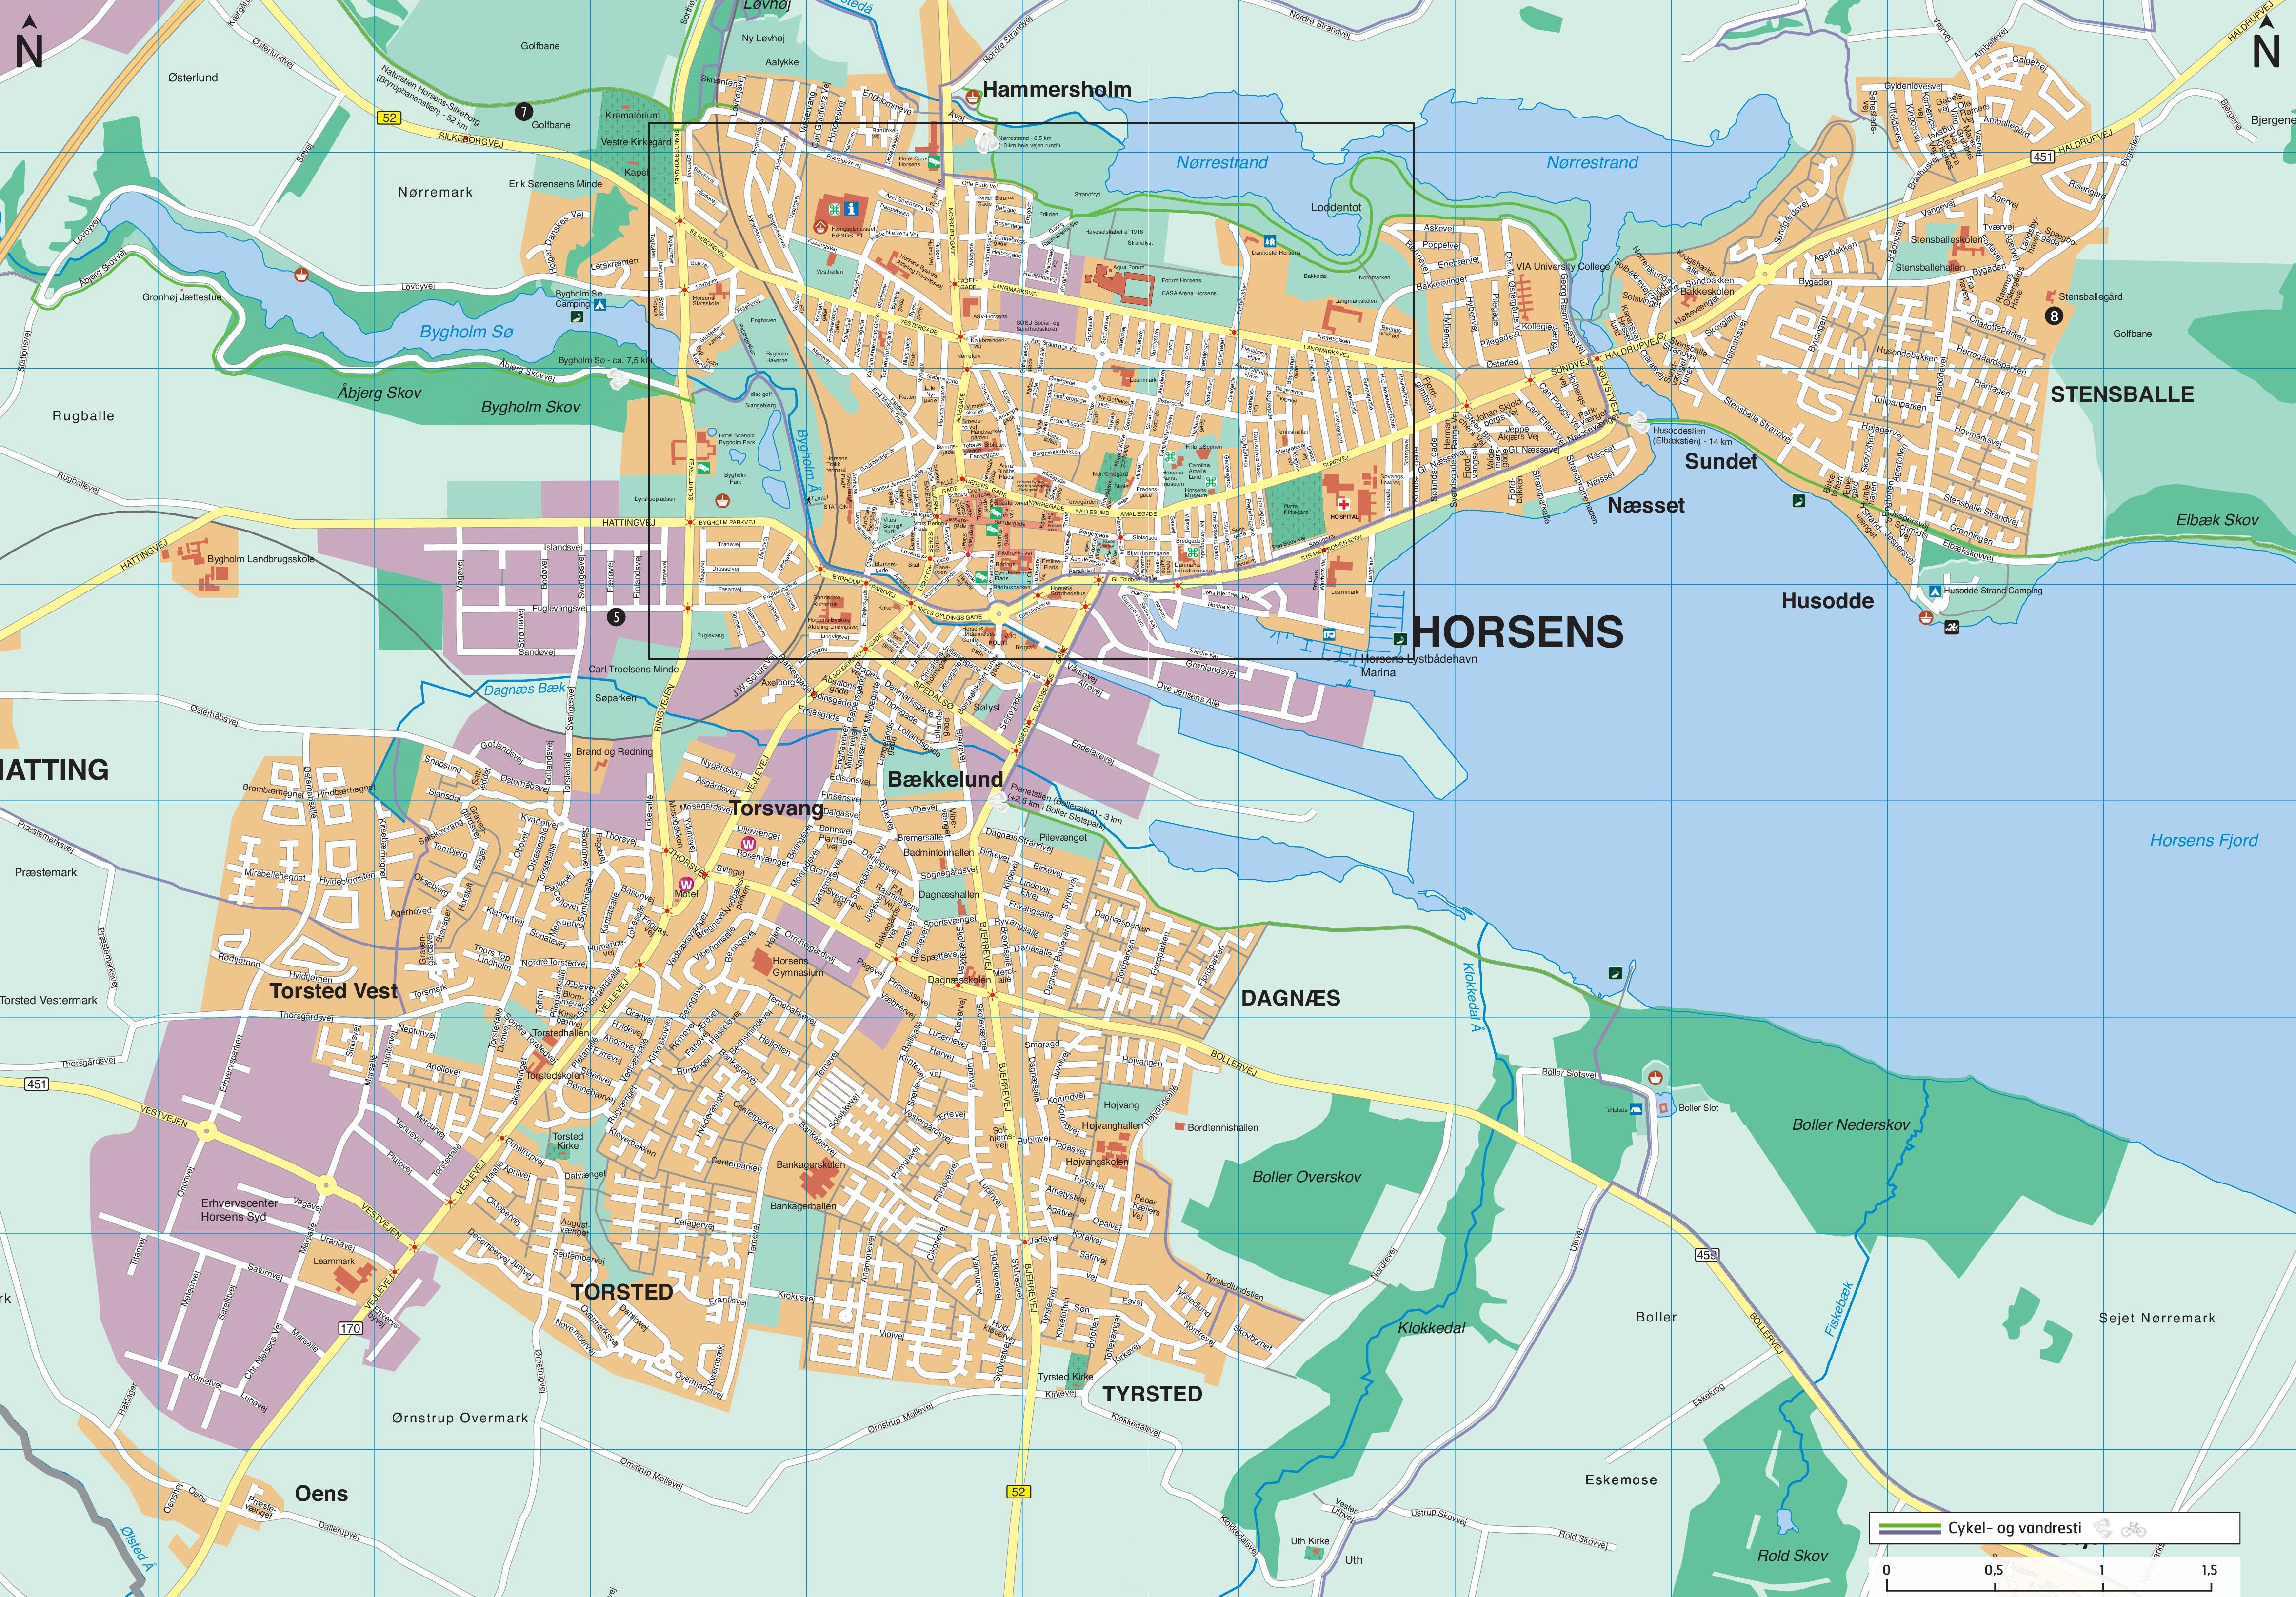 Horsens hotels and sightseeings map